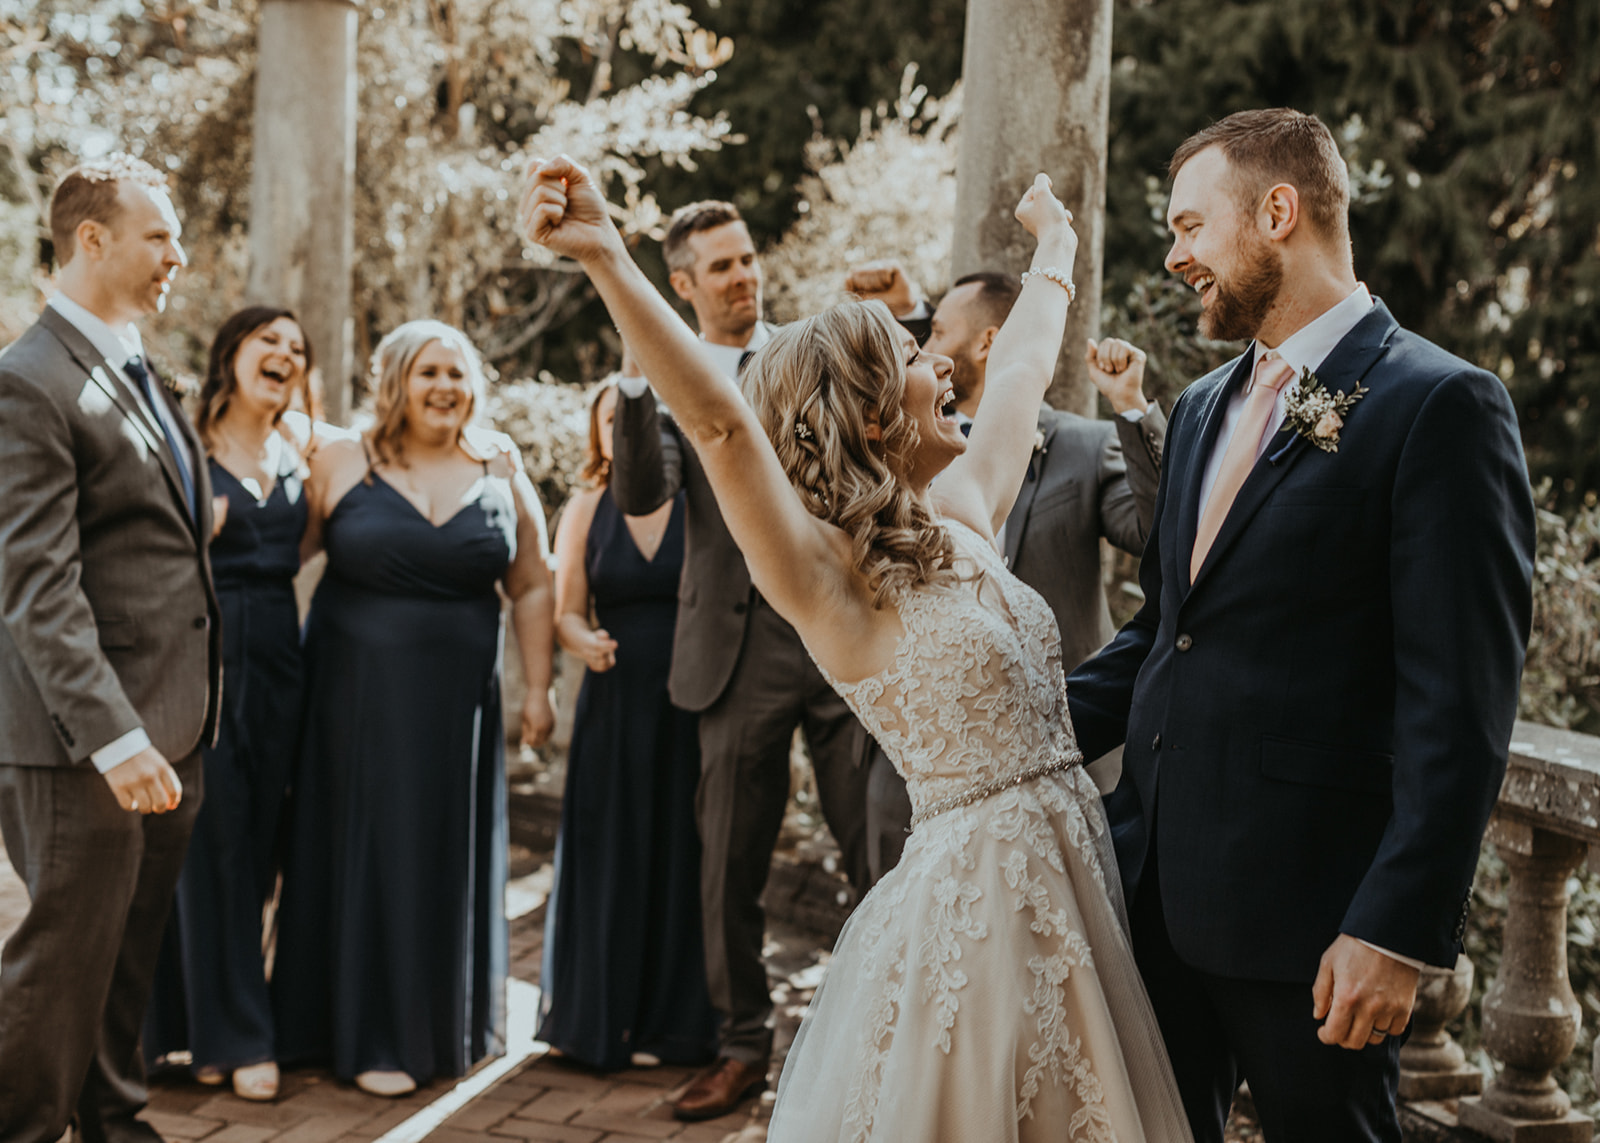 Bride throws her arms up in happiness wearing Rebecca Ingram gown by Blush Bridal Vancouver Island